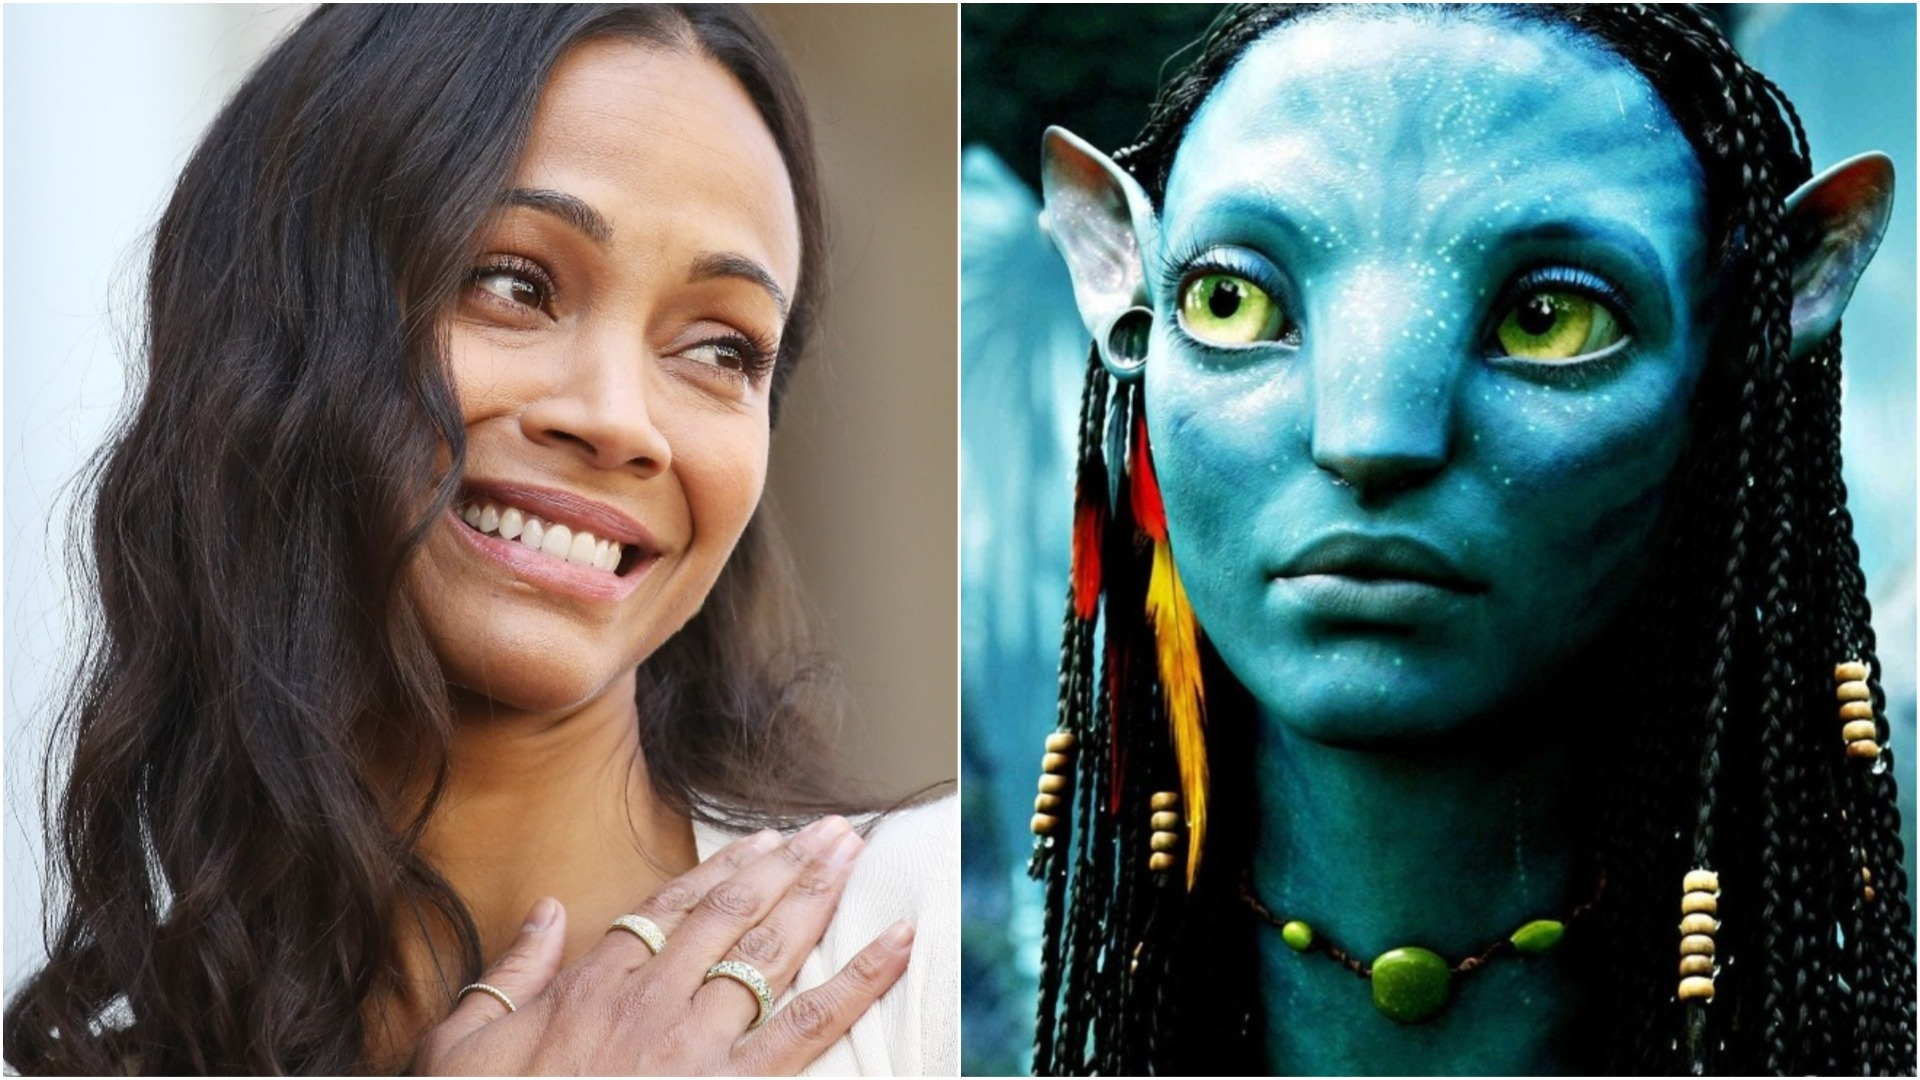 Zoe Saldana Talks Filming Avatar In This Exclusive